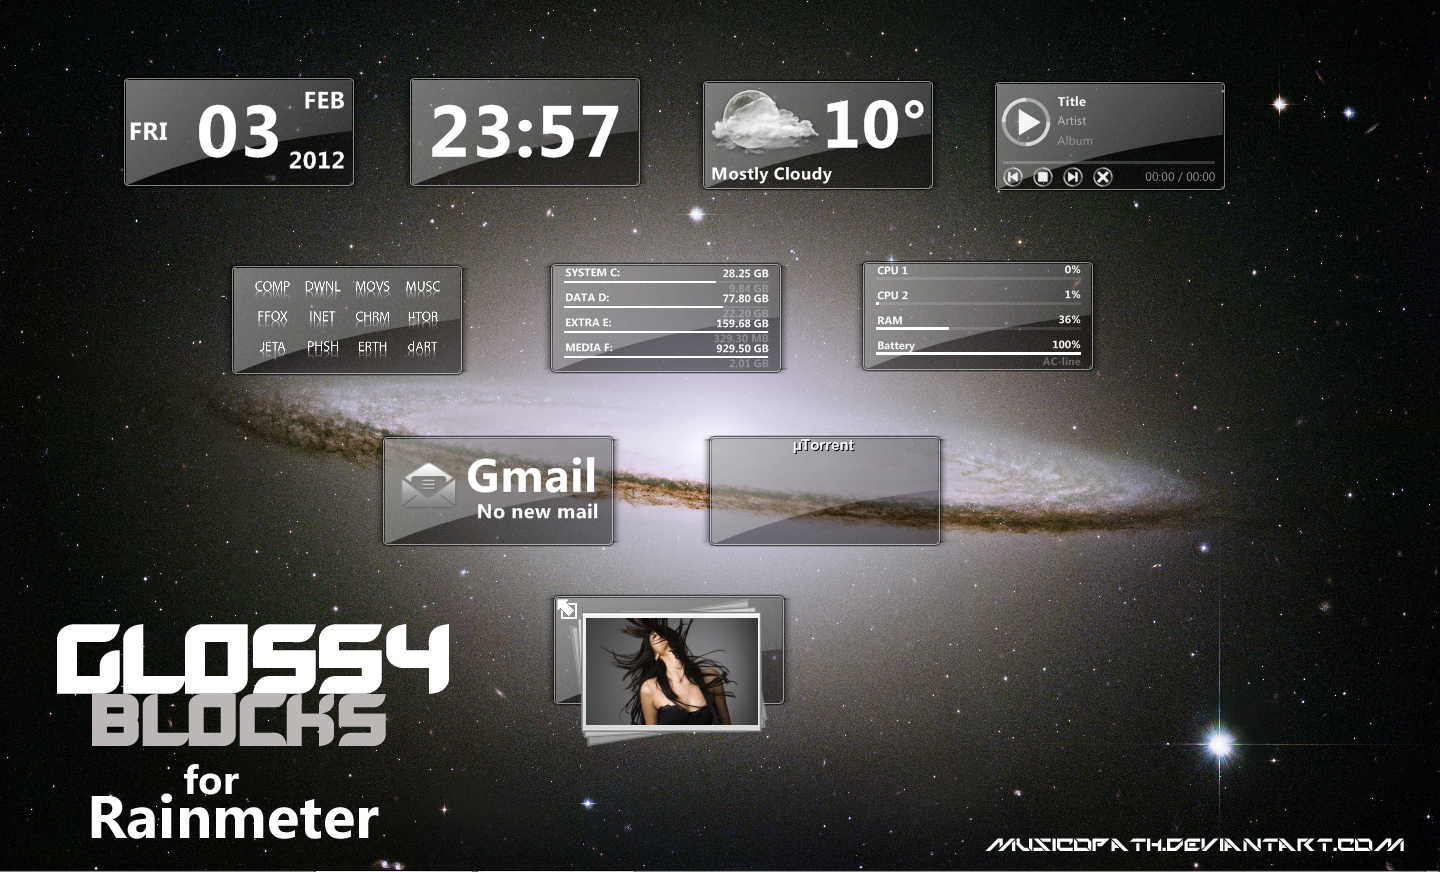 GLOSSY BLOCKS for Rainmeter by musicopath